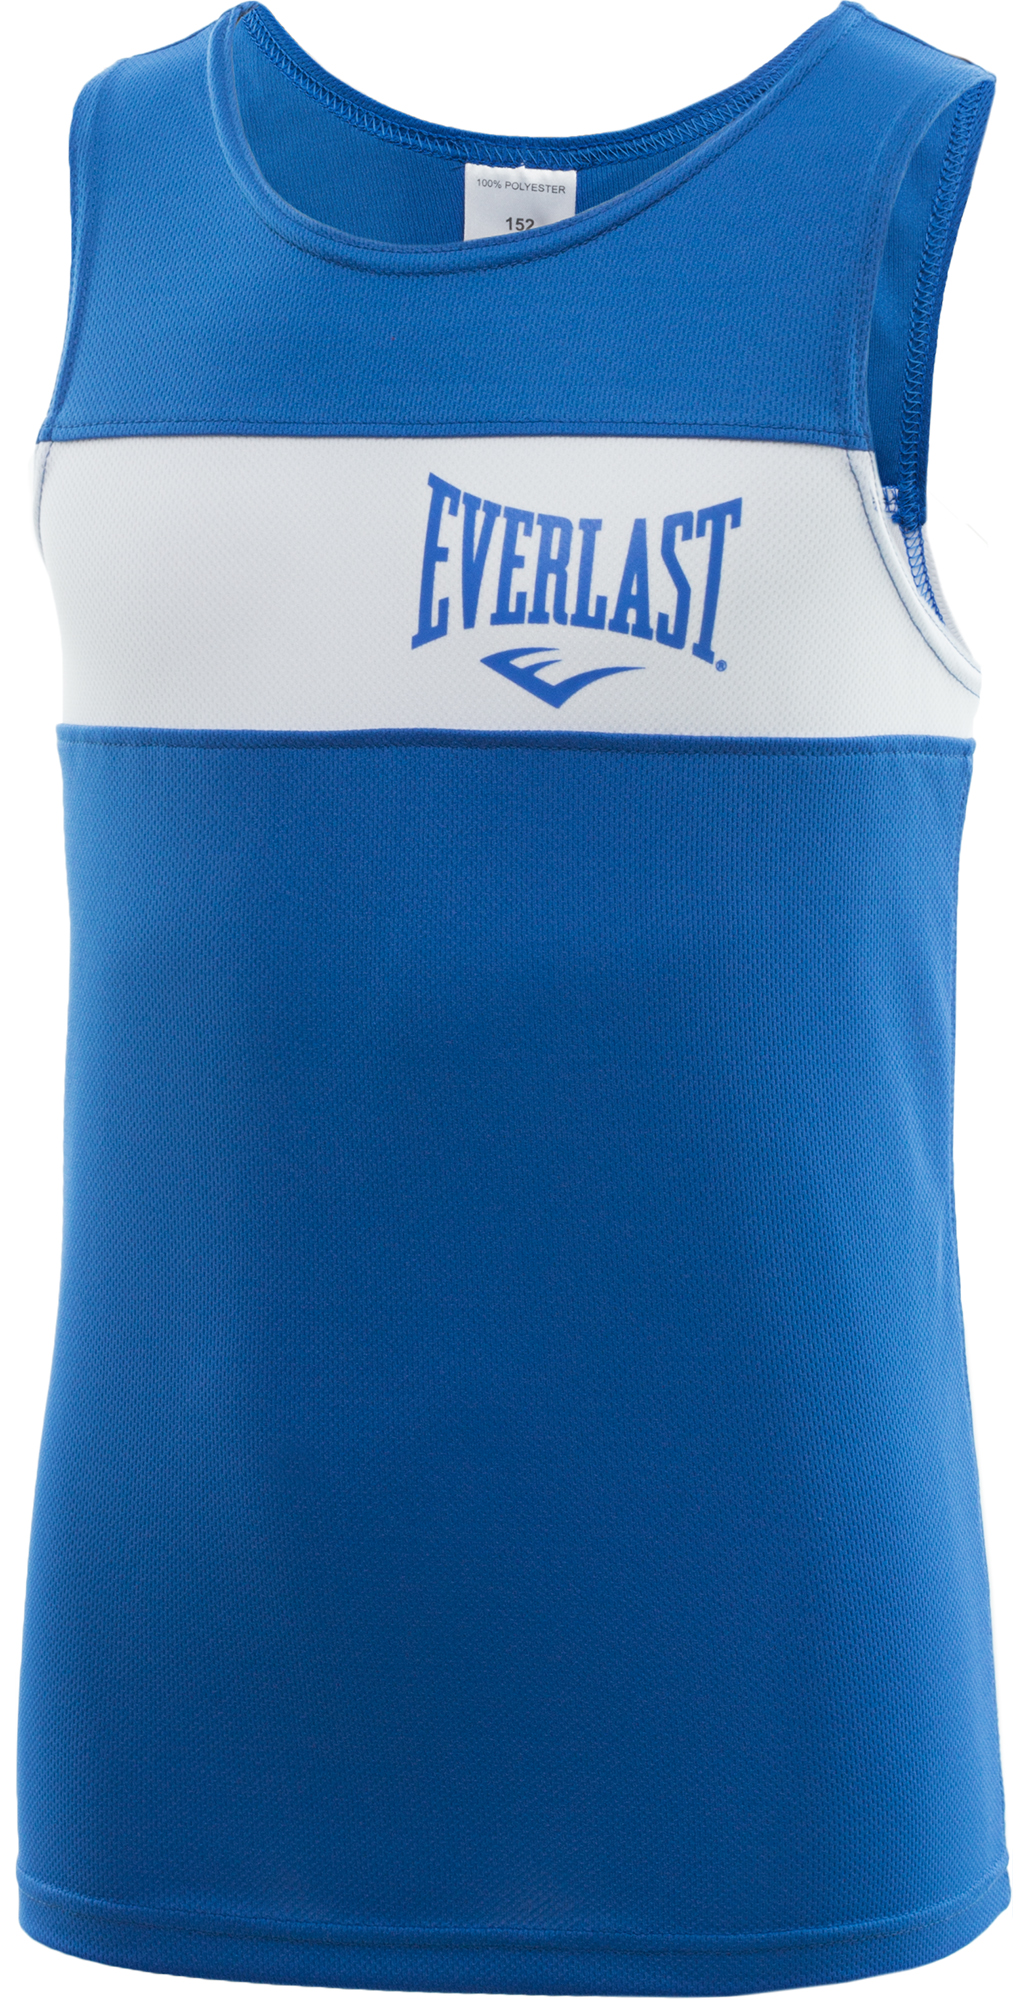 цена на Everlast Майка для бокса детская Everlast Elite, размер 152